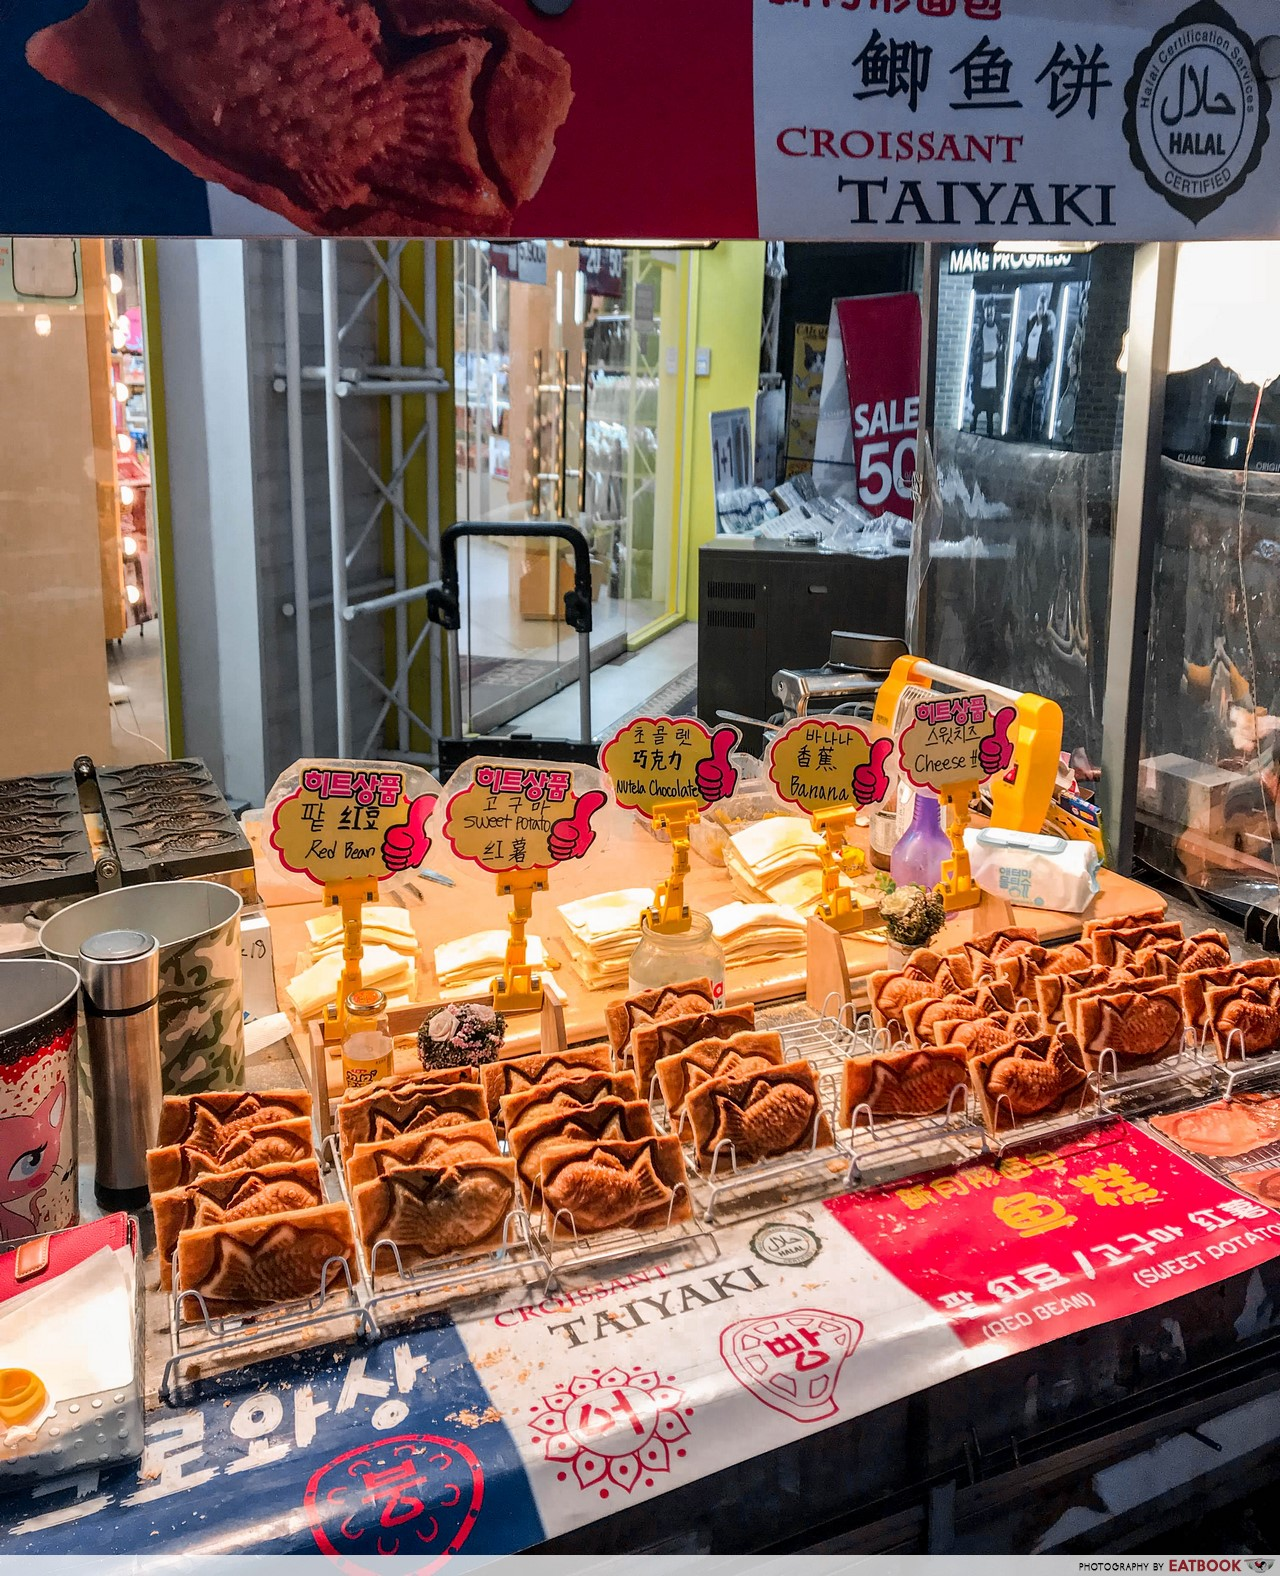 Halal Food places In Seoul - Croissant Taiyaki